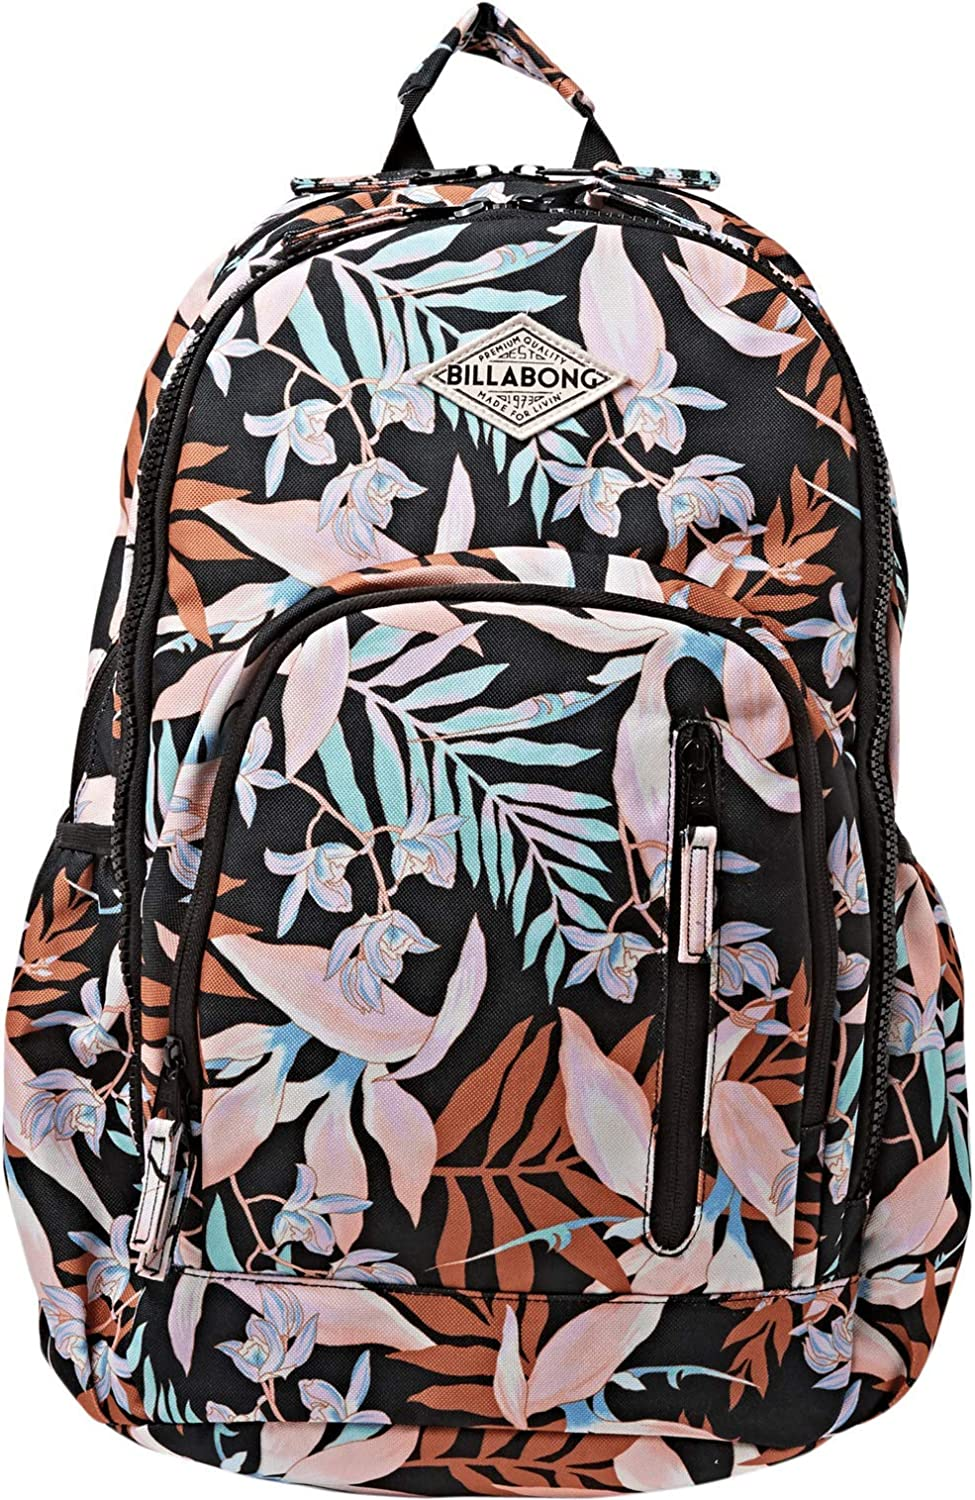 Billabong Women's Roadie Backpack